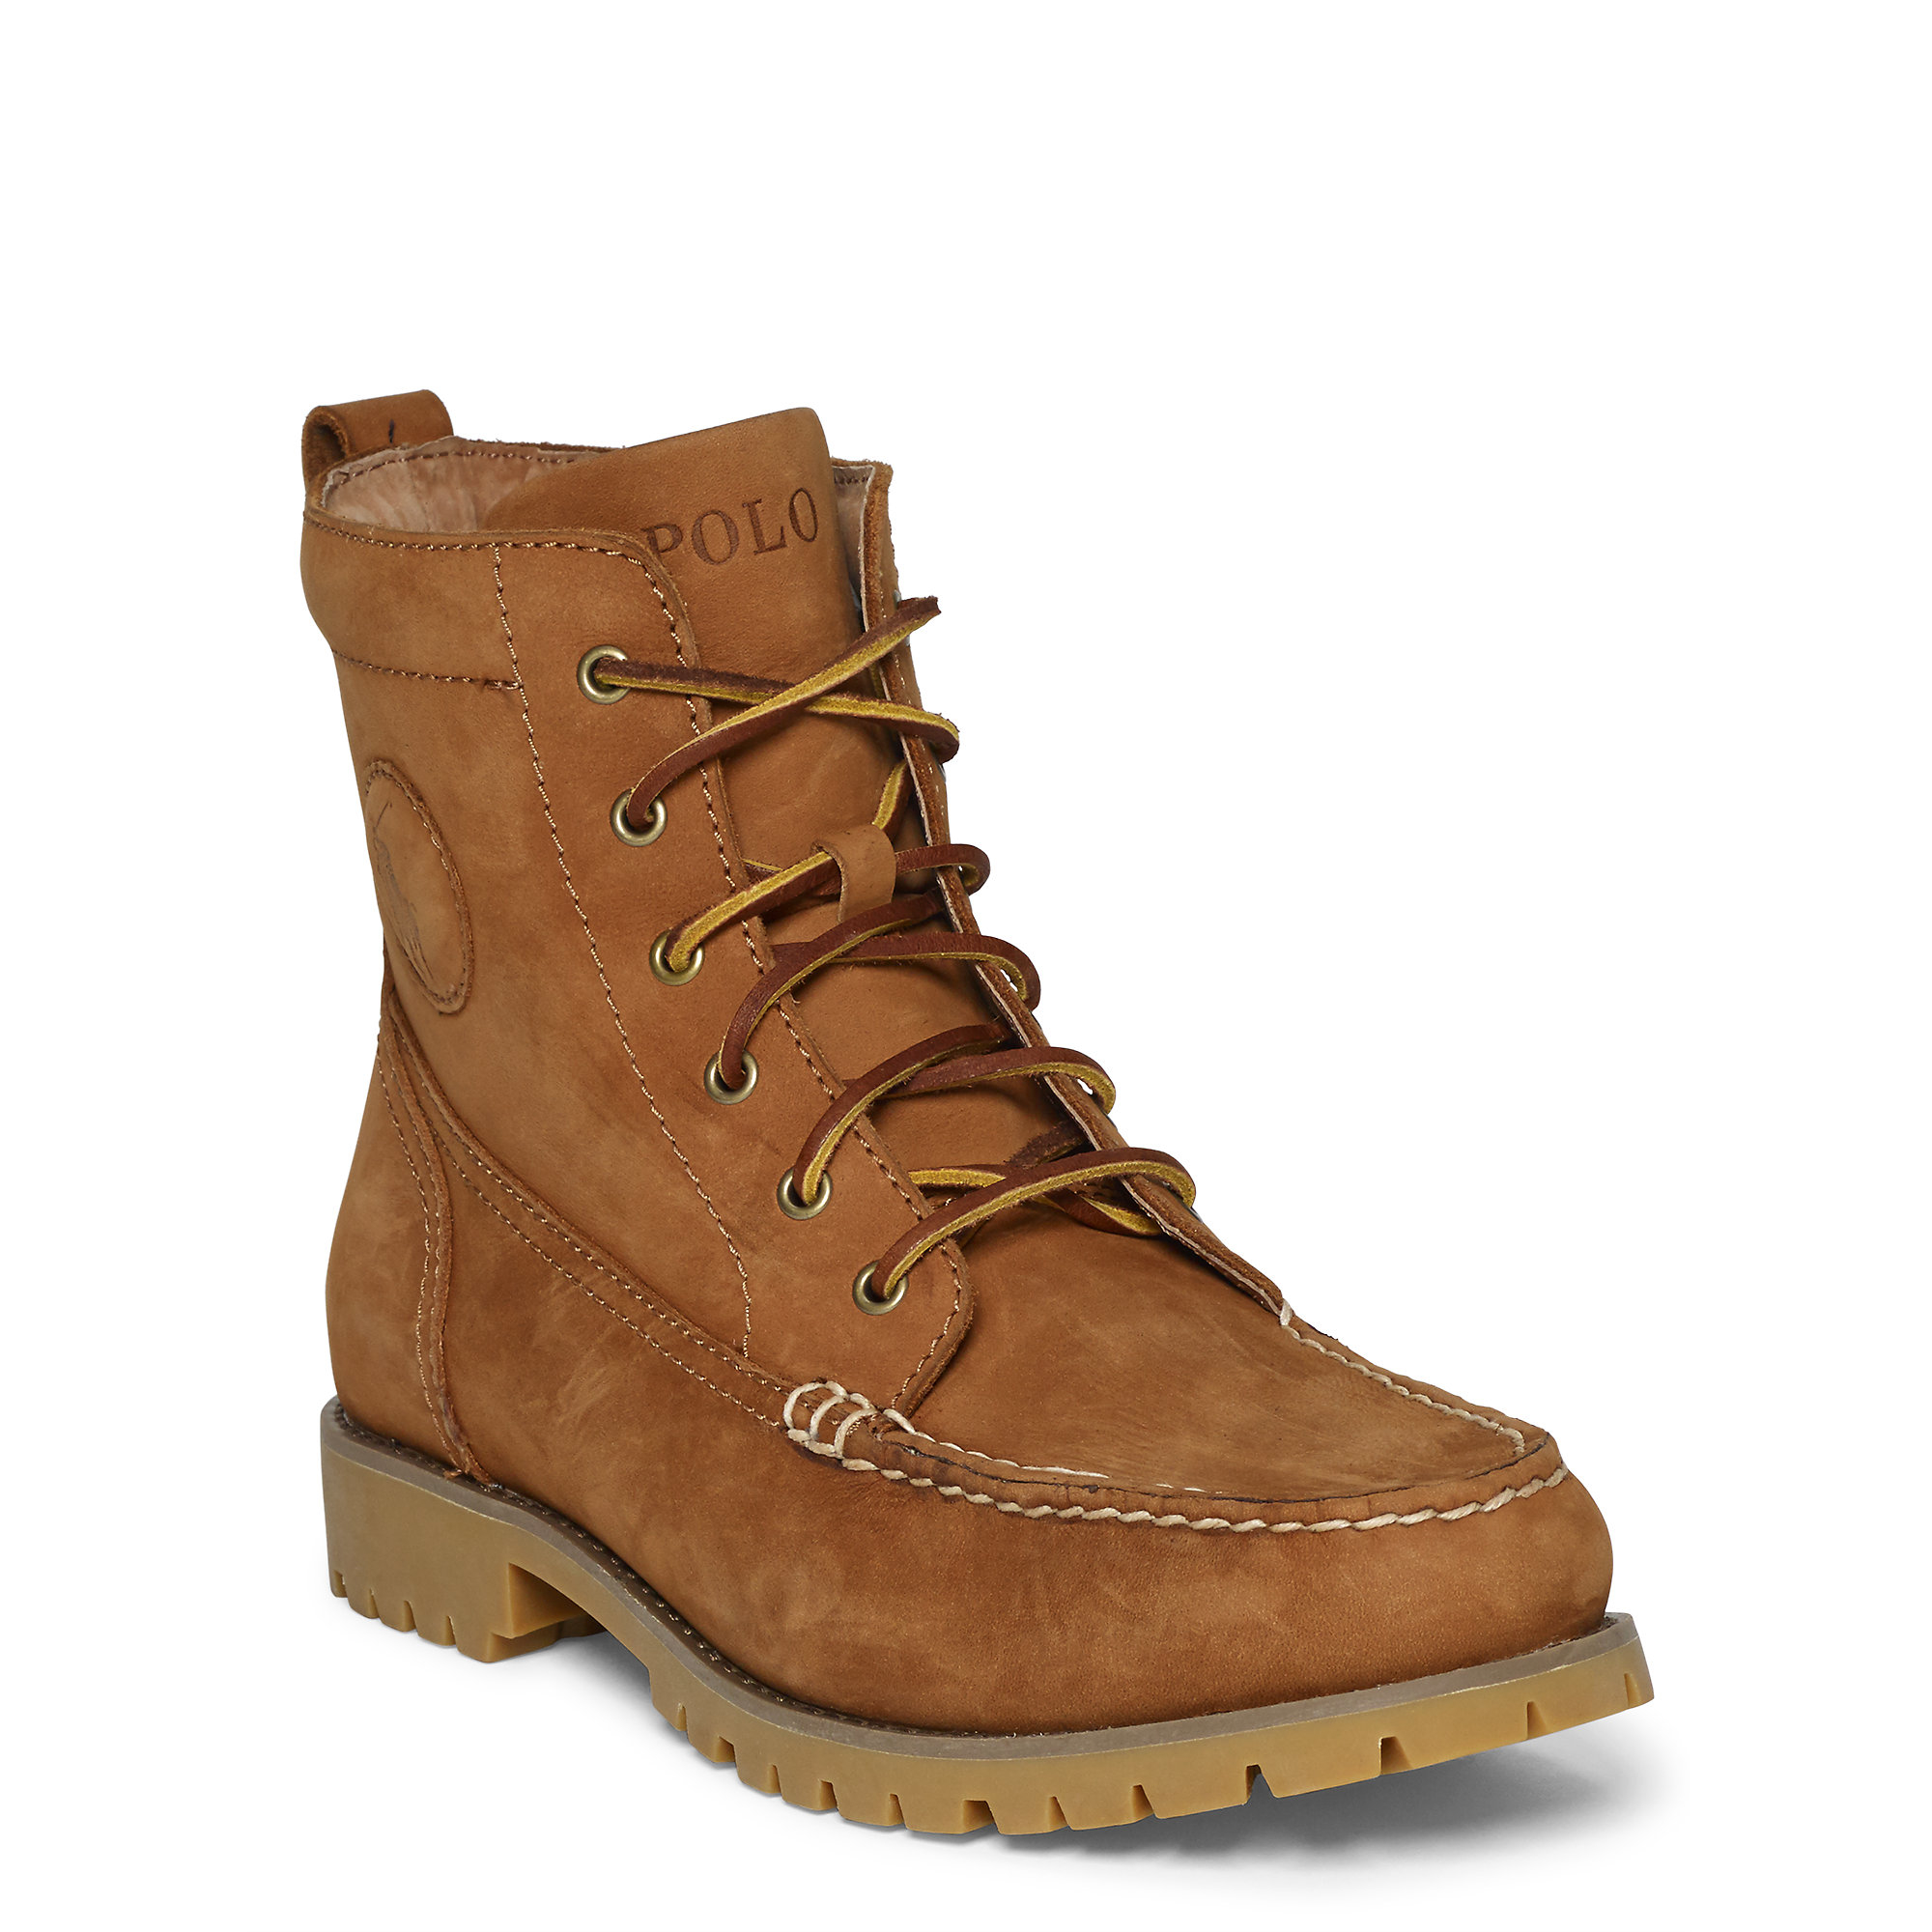 polo work boots, OFF 74%,Buy!